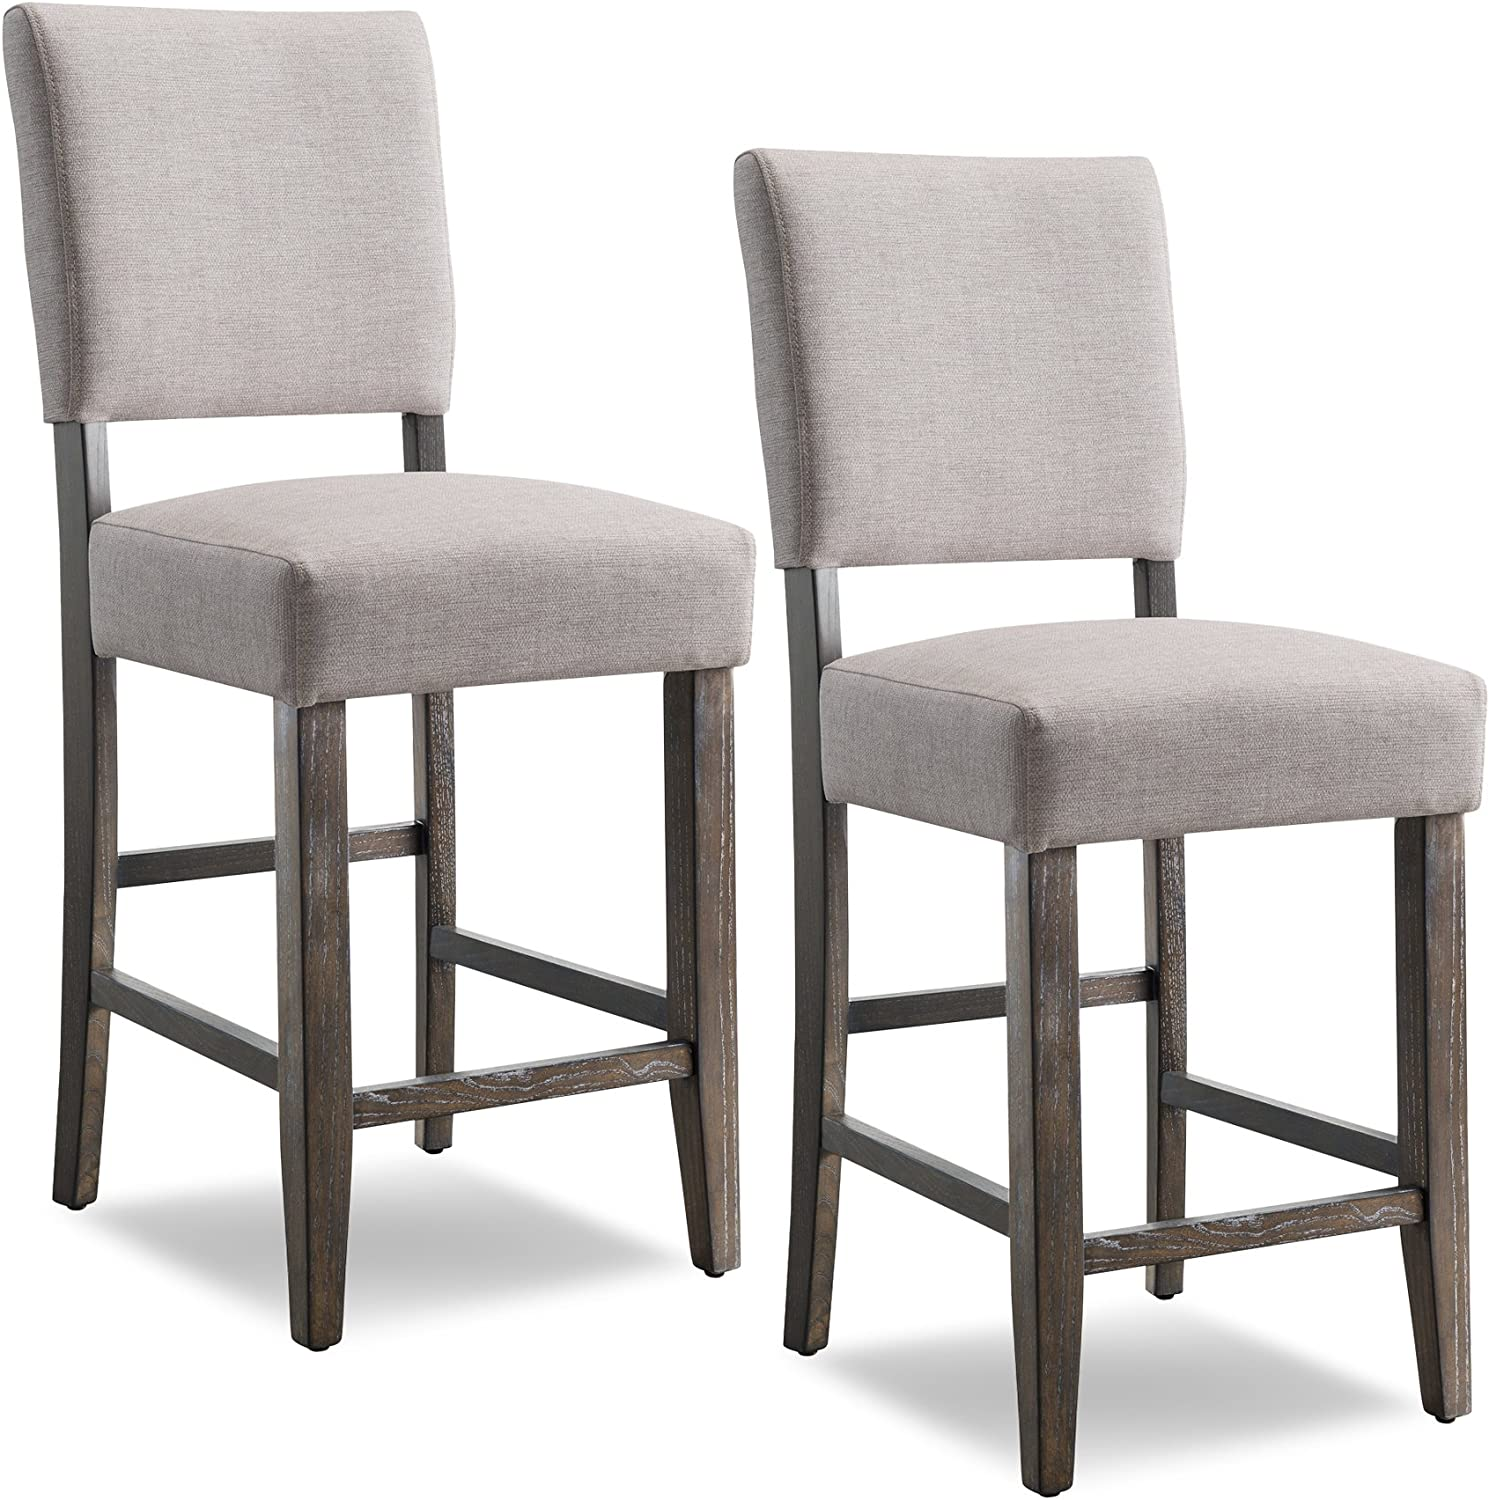 Leick Upholstered Back Counter Height Barstool Set of 9, Grey